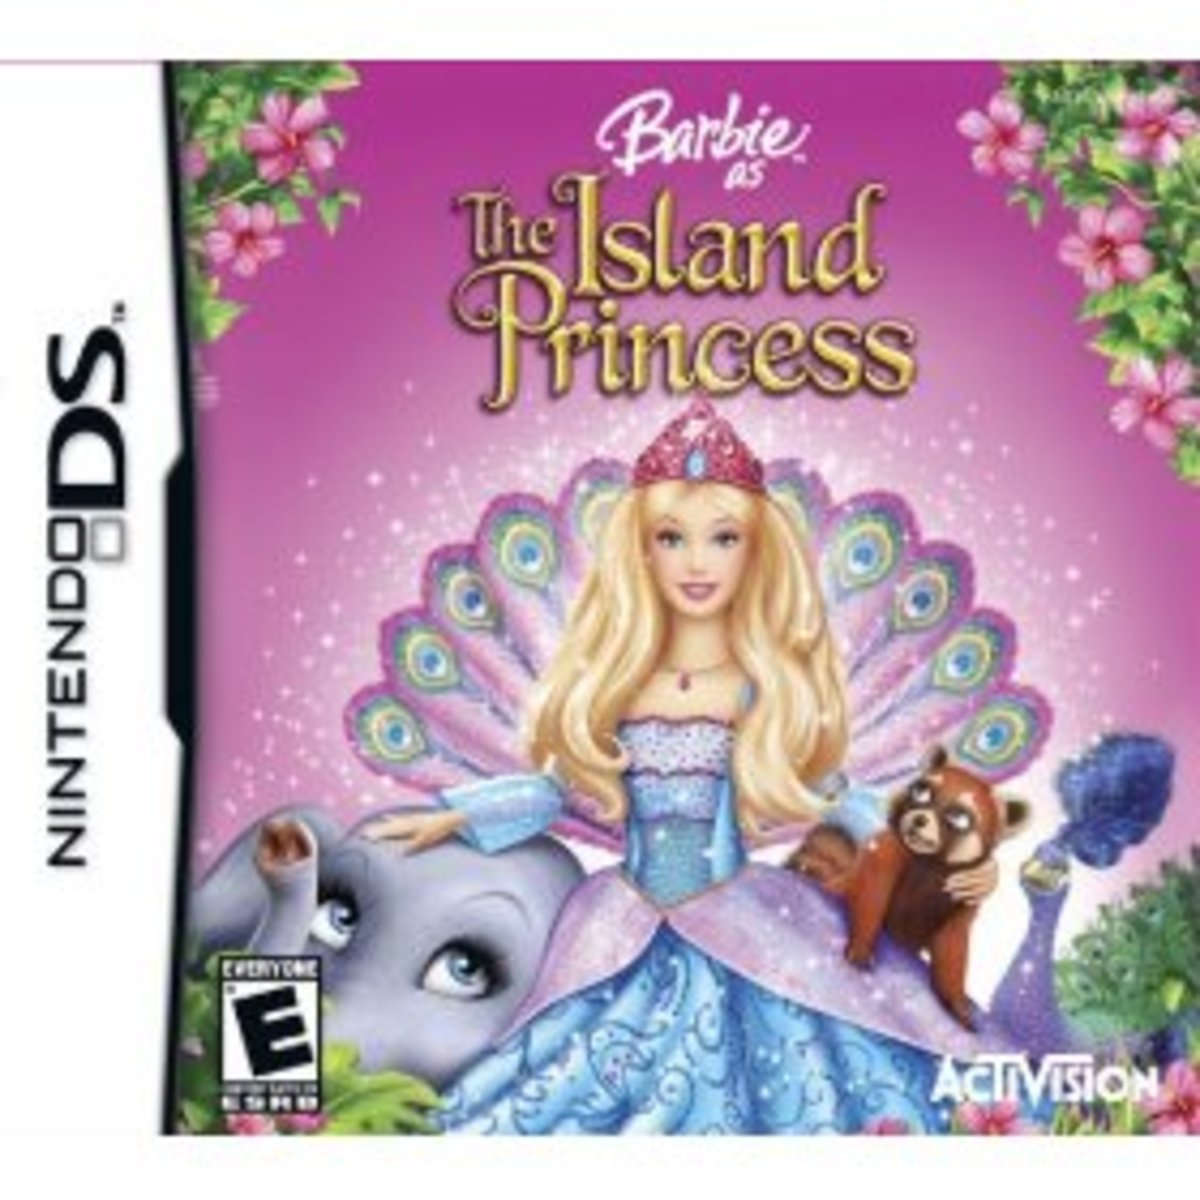 Barbie island Princess for Nintendo DSi - Best Girl's DSi Game!